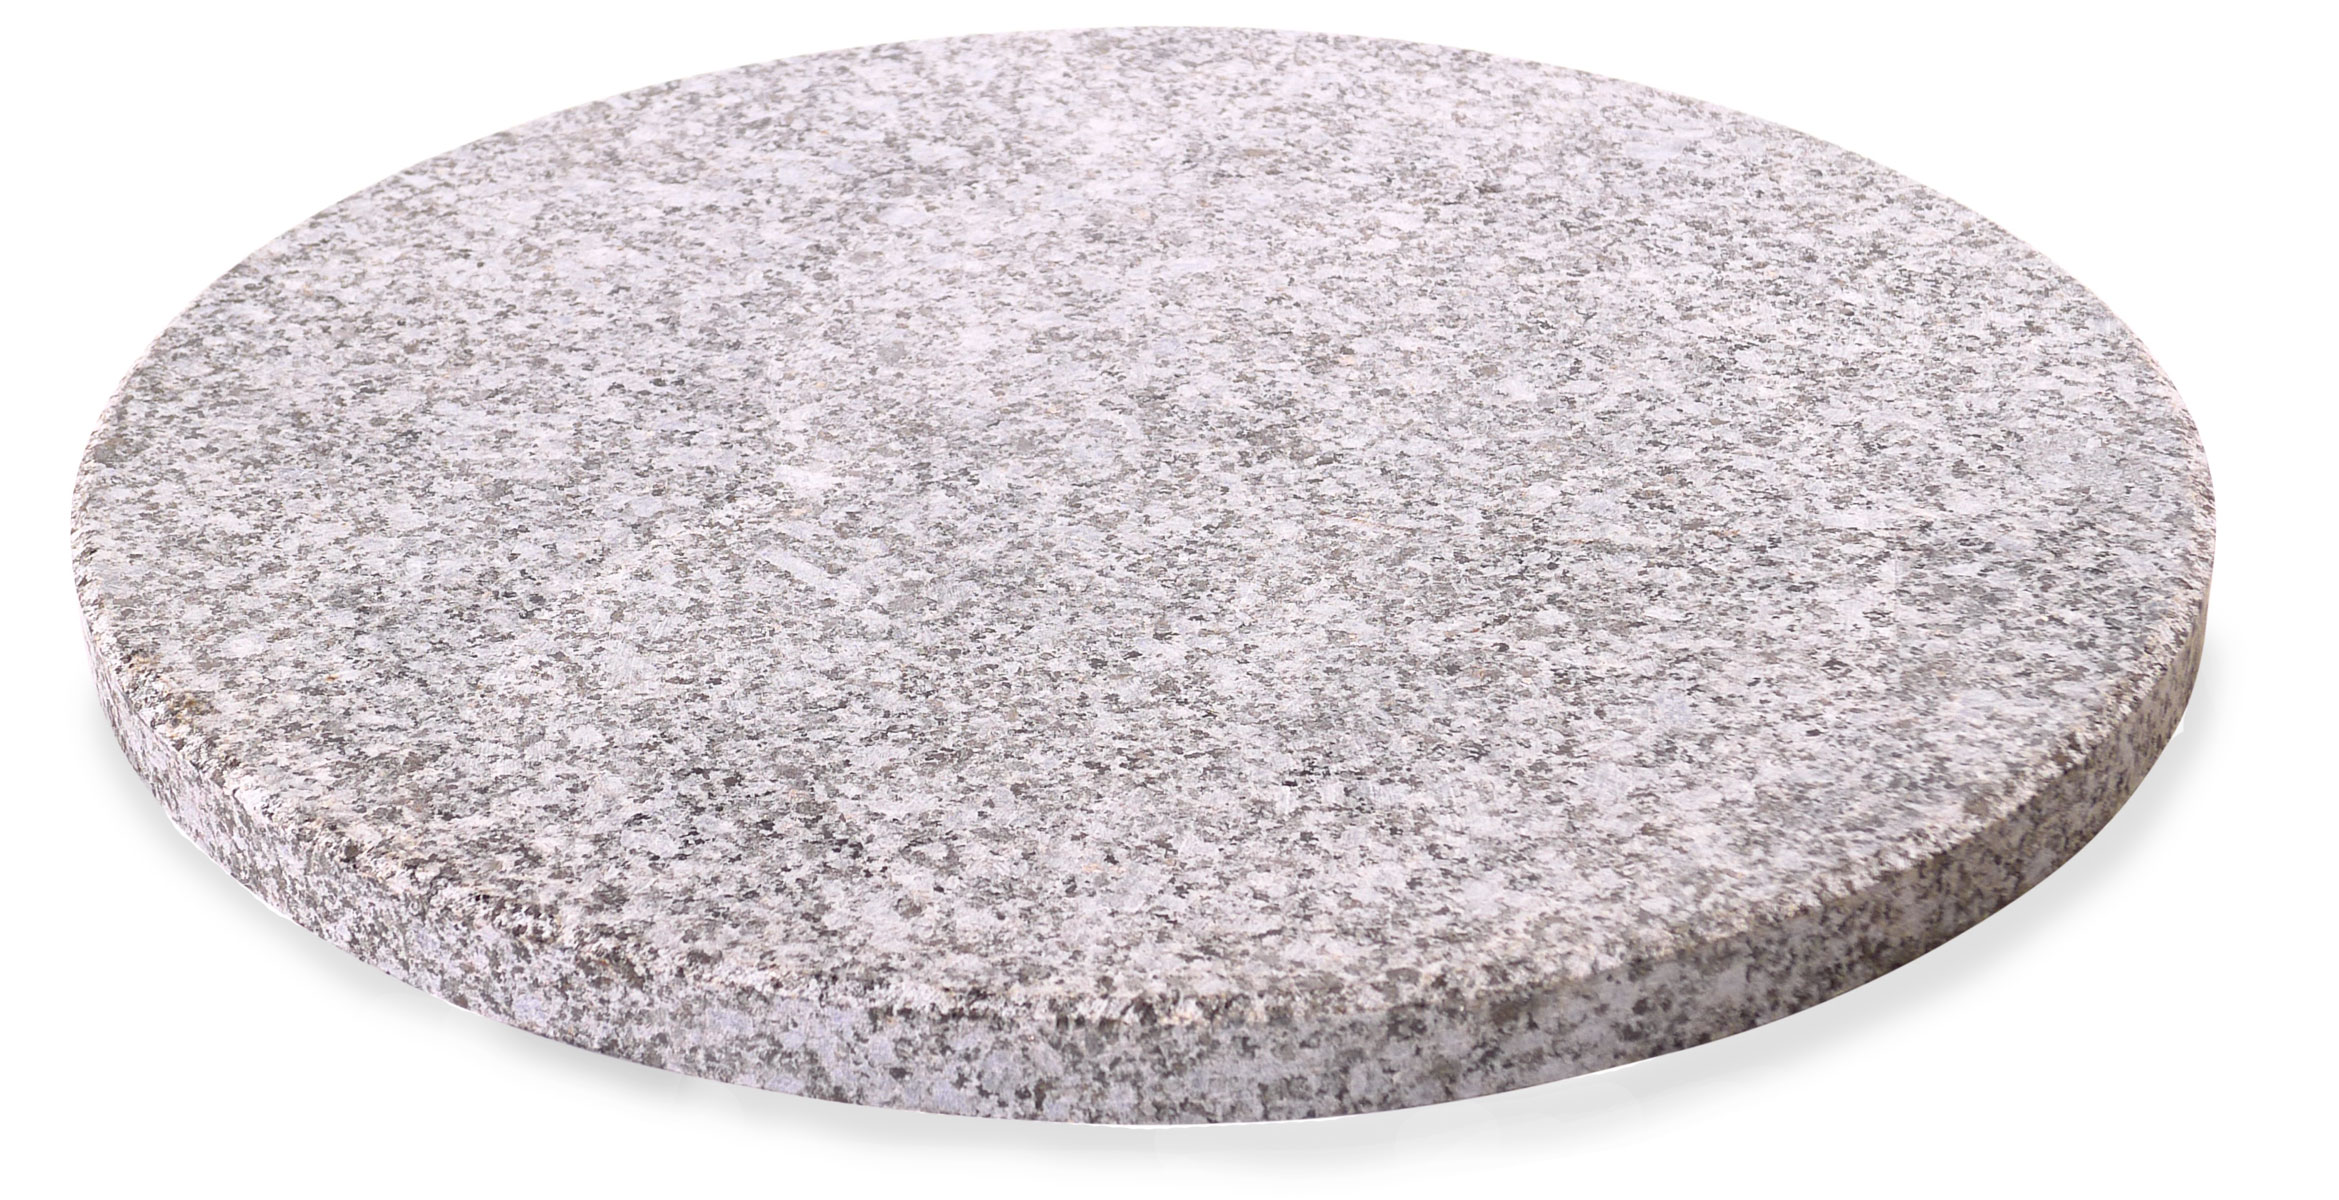 Image of Granite Pizza Stone, 14-Inch